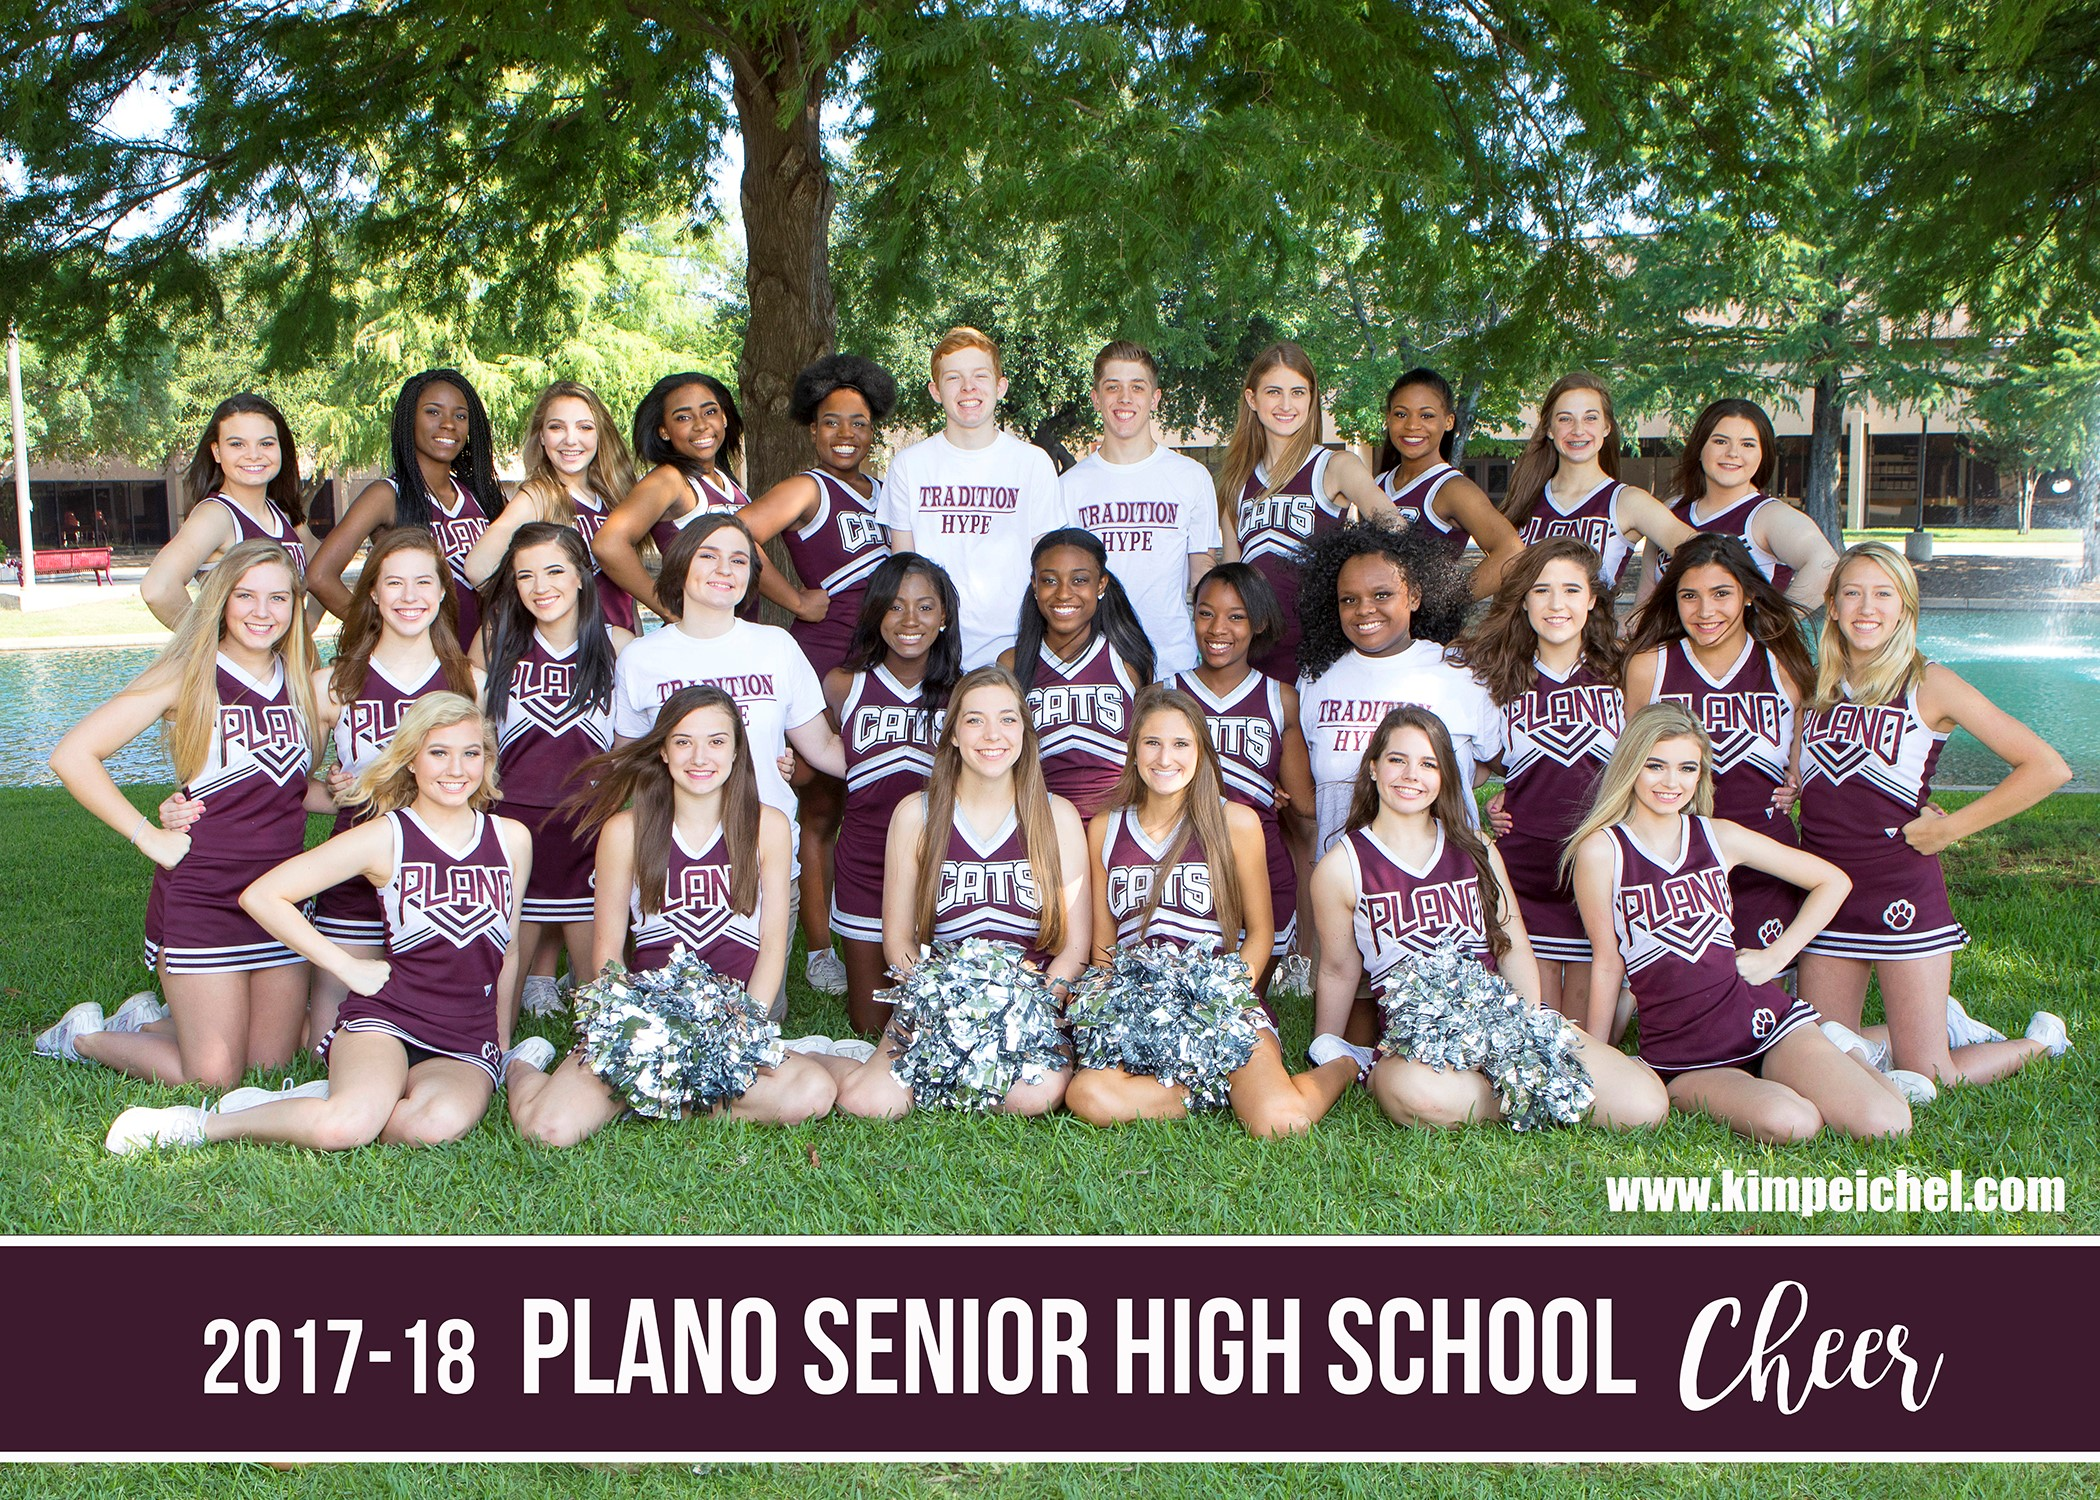 2017-2018 PSHS Cheerleaders